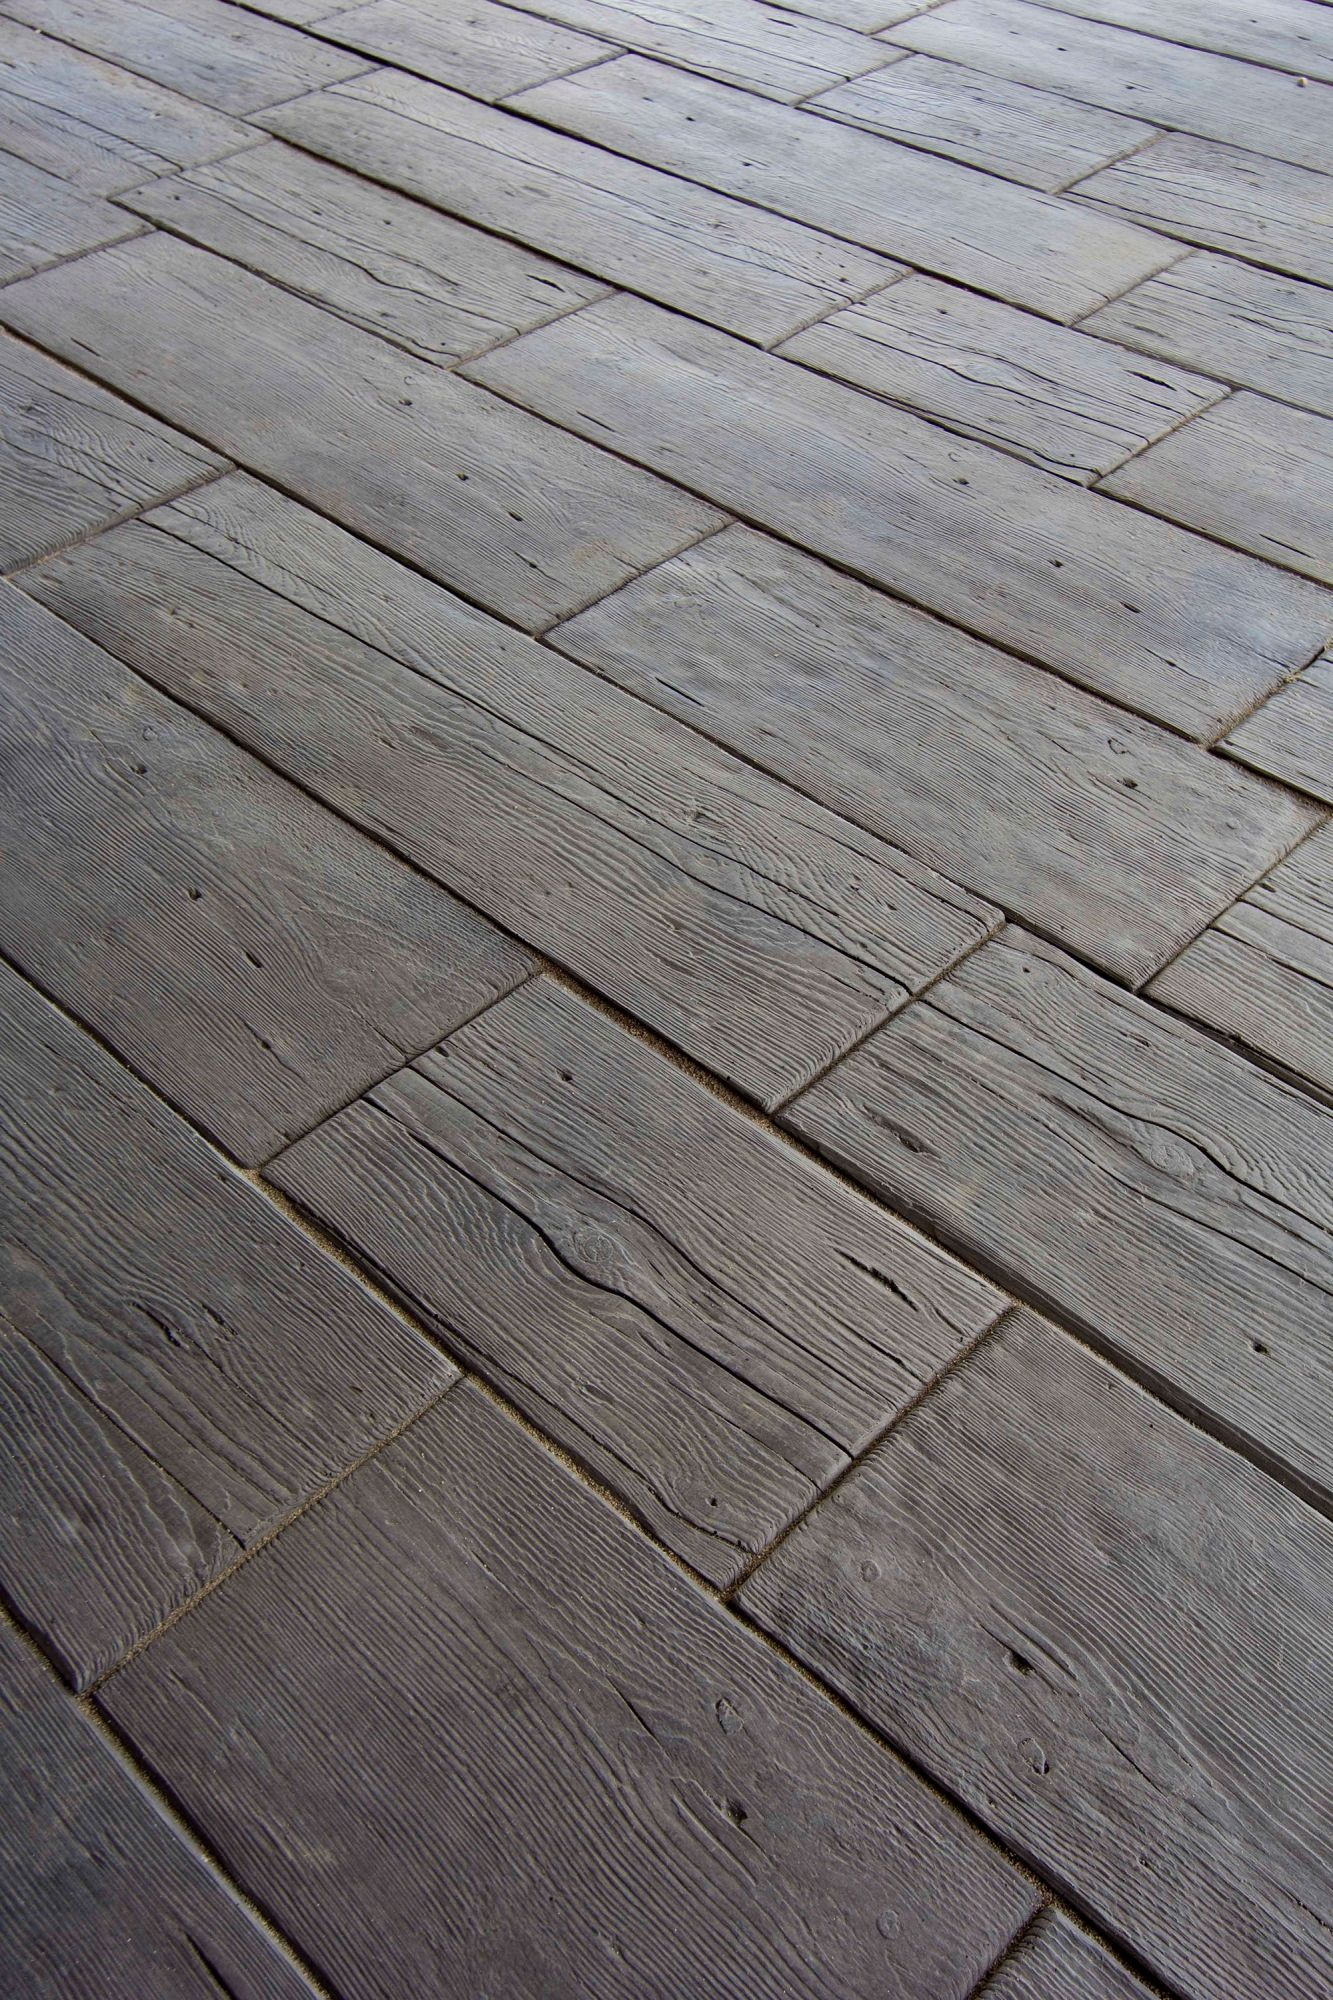 Rustic wood? Nope - 2  thick concrete pavers. u0027Barn Plank Landscape Tileu0027 by Silver Creek Stoneworks Rochester MN. Ideal for outdoor paths decks etc. & Rustic wood? Nope - 2